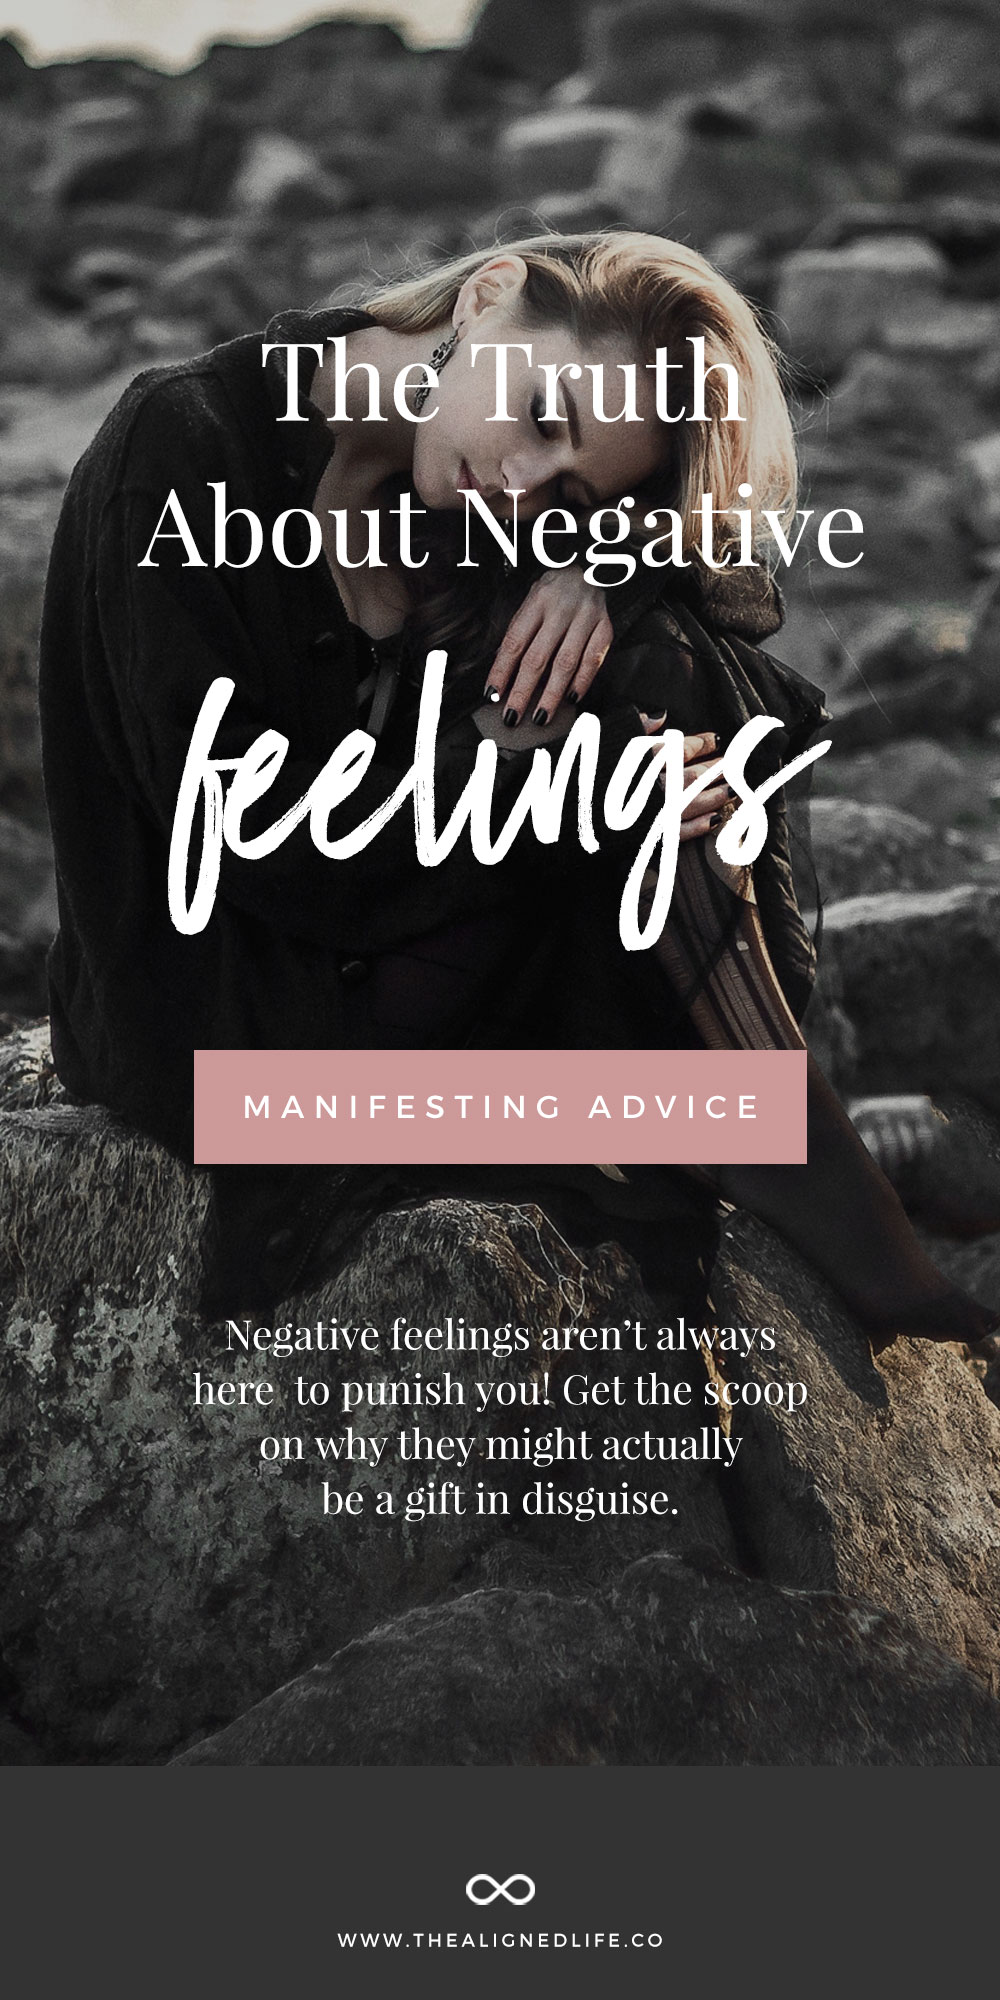 The Truth About Negative Feelings